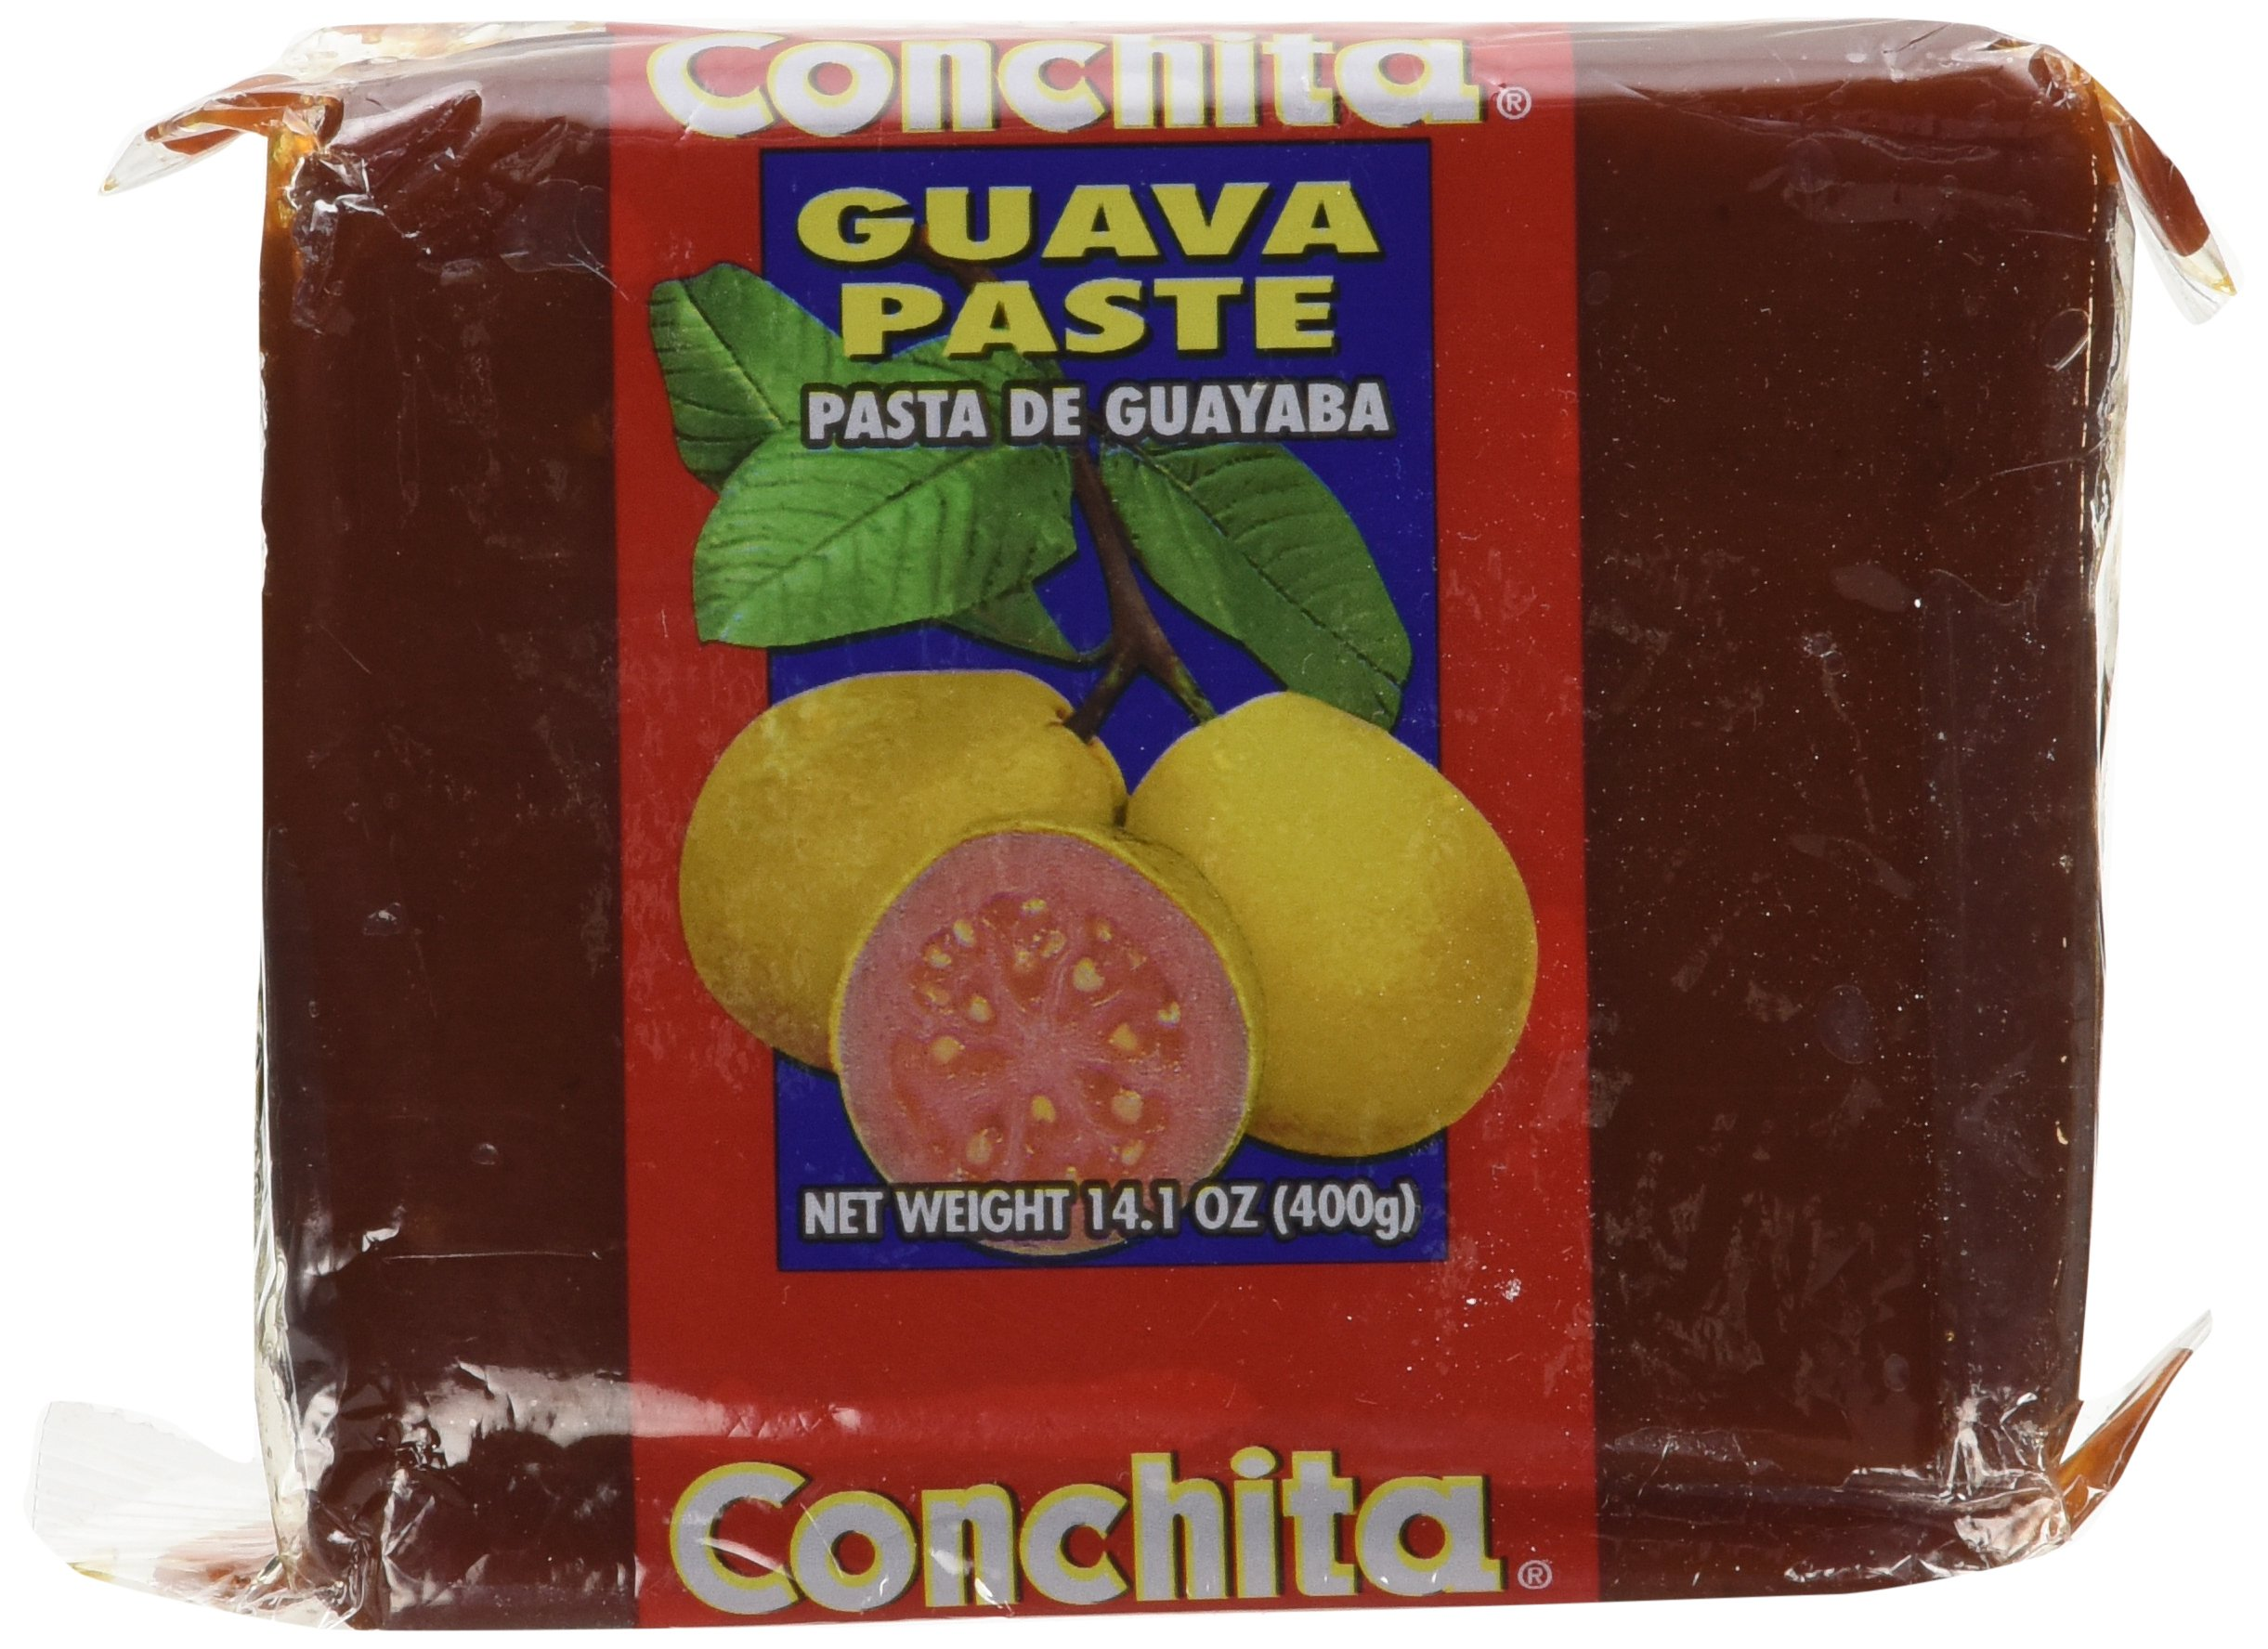 Conchita Guava Paste, Pasta De Guayava, 14 Oz Each (3pk)